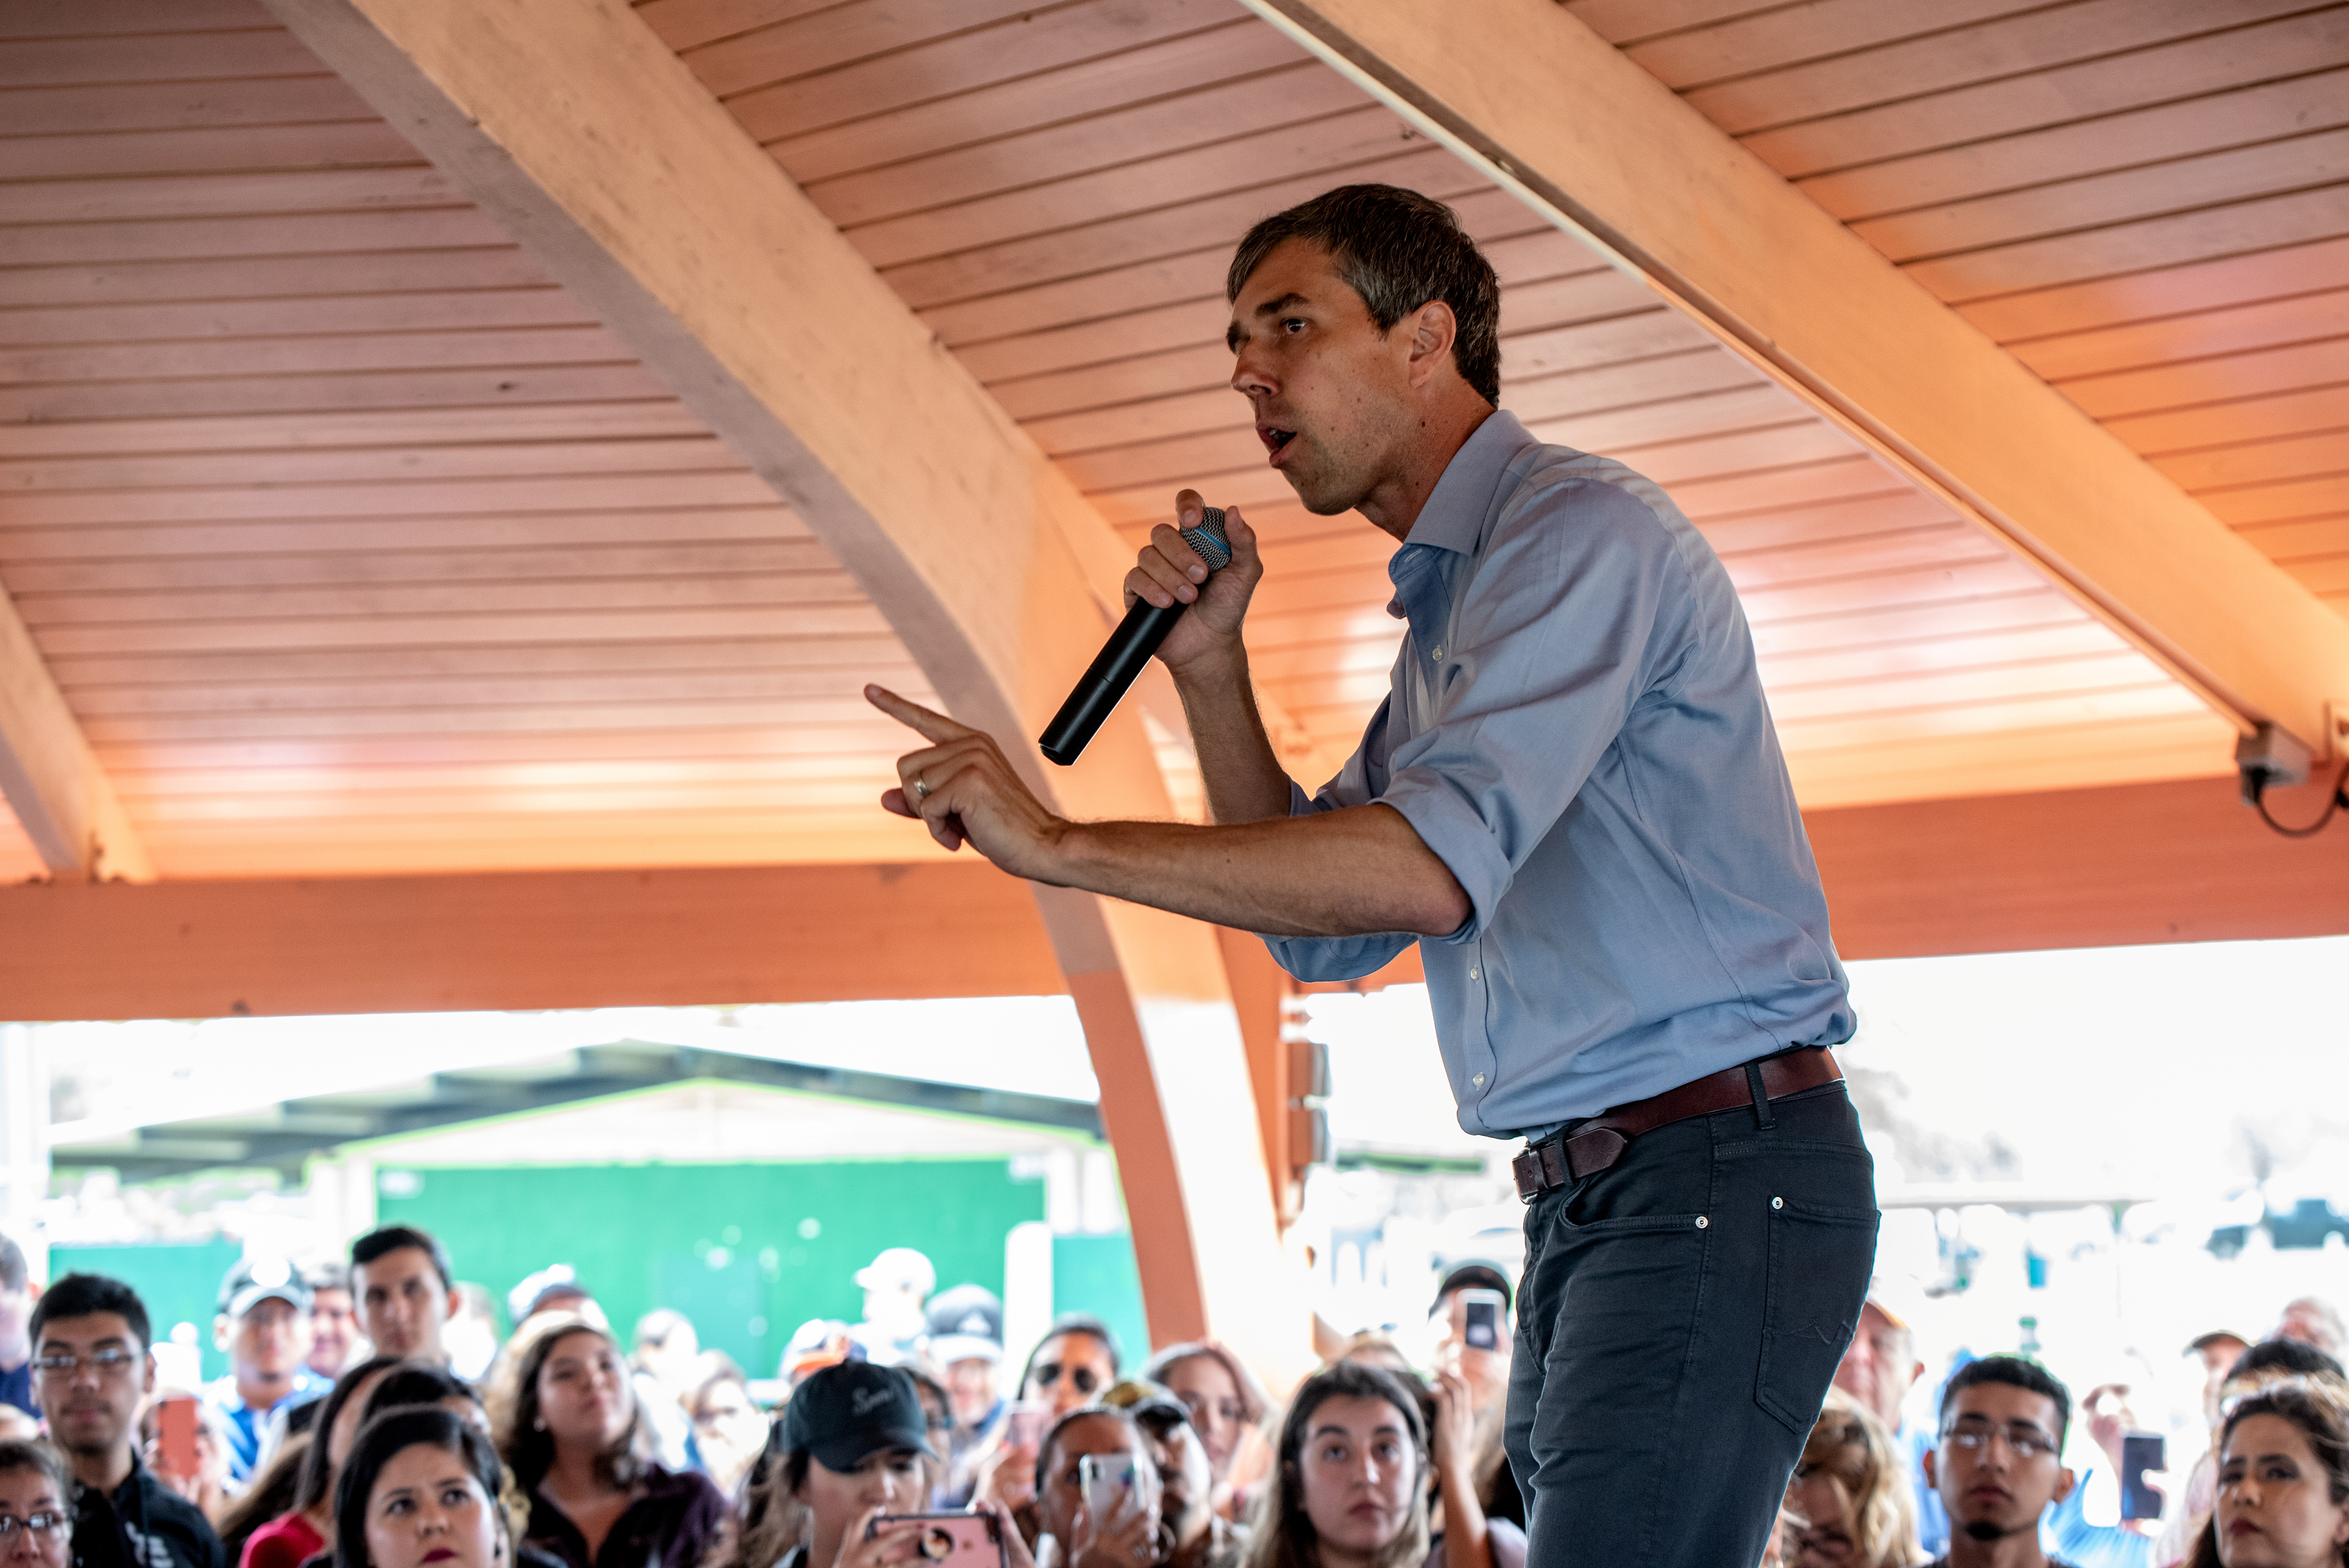 Beto O'Rourke is a man of many professions: from selling ice cream to running for president. (REUTERS/Sergio Flores)